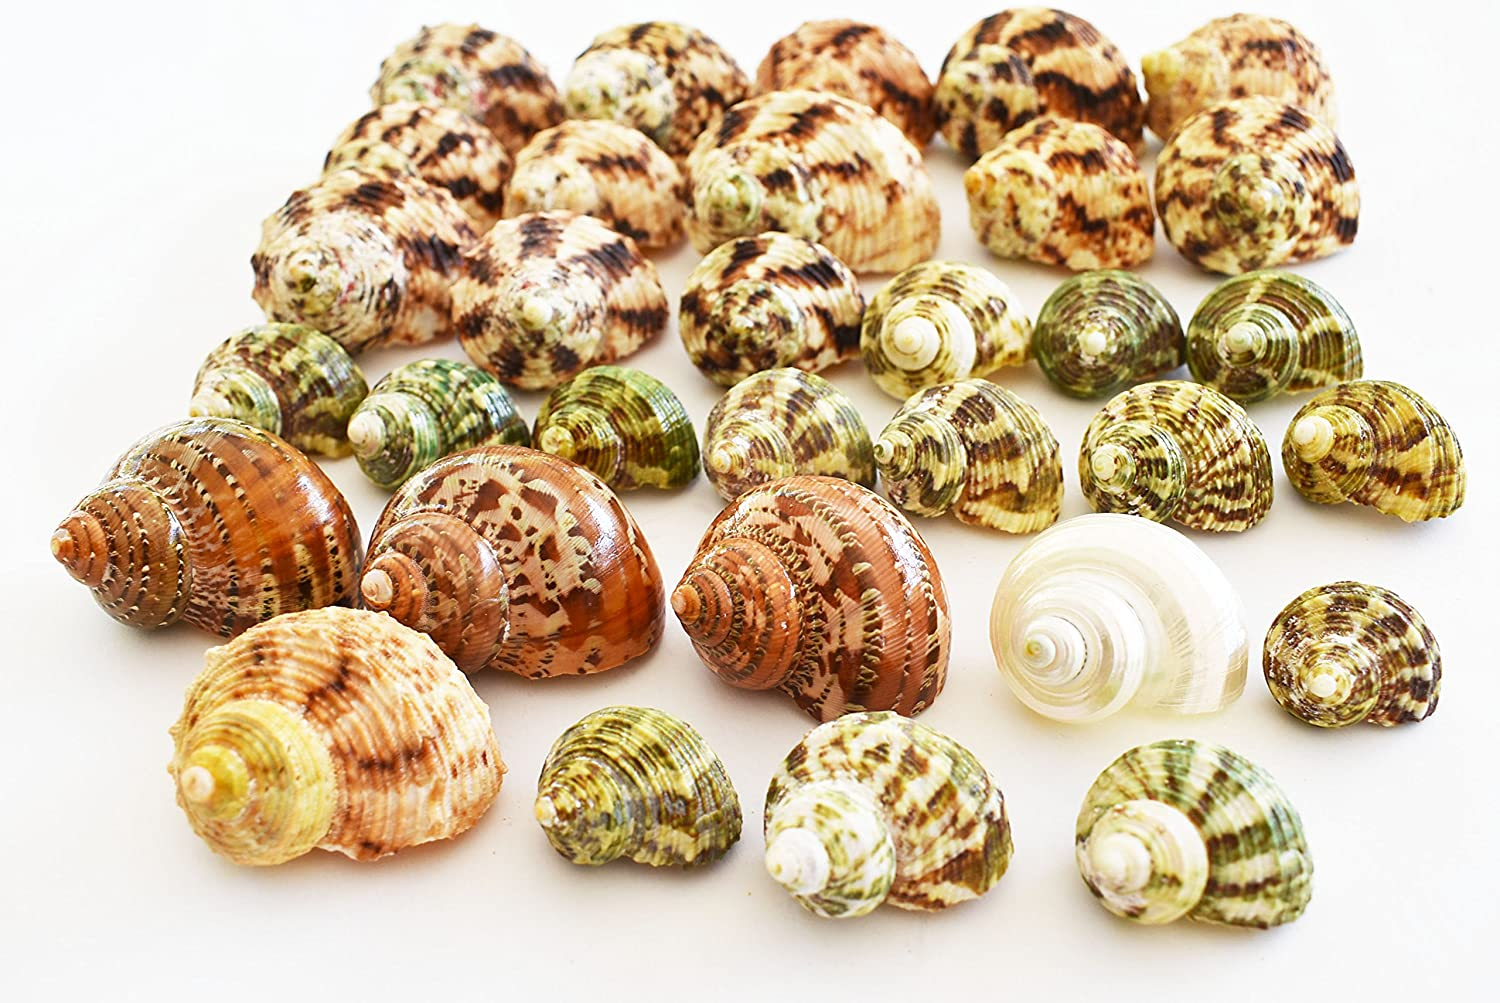 Florida Shells and Gifts Inc. FSG - 30 Select Hermit Crab Shells Lot 3/4-2' size (opening 5/8-1') Seashells - Includes Polished Tapestry Turbos, Silver Turbos, Silver Mouth Turbos and more.